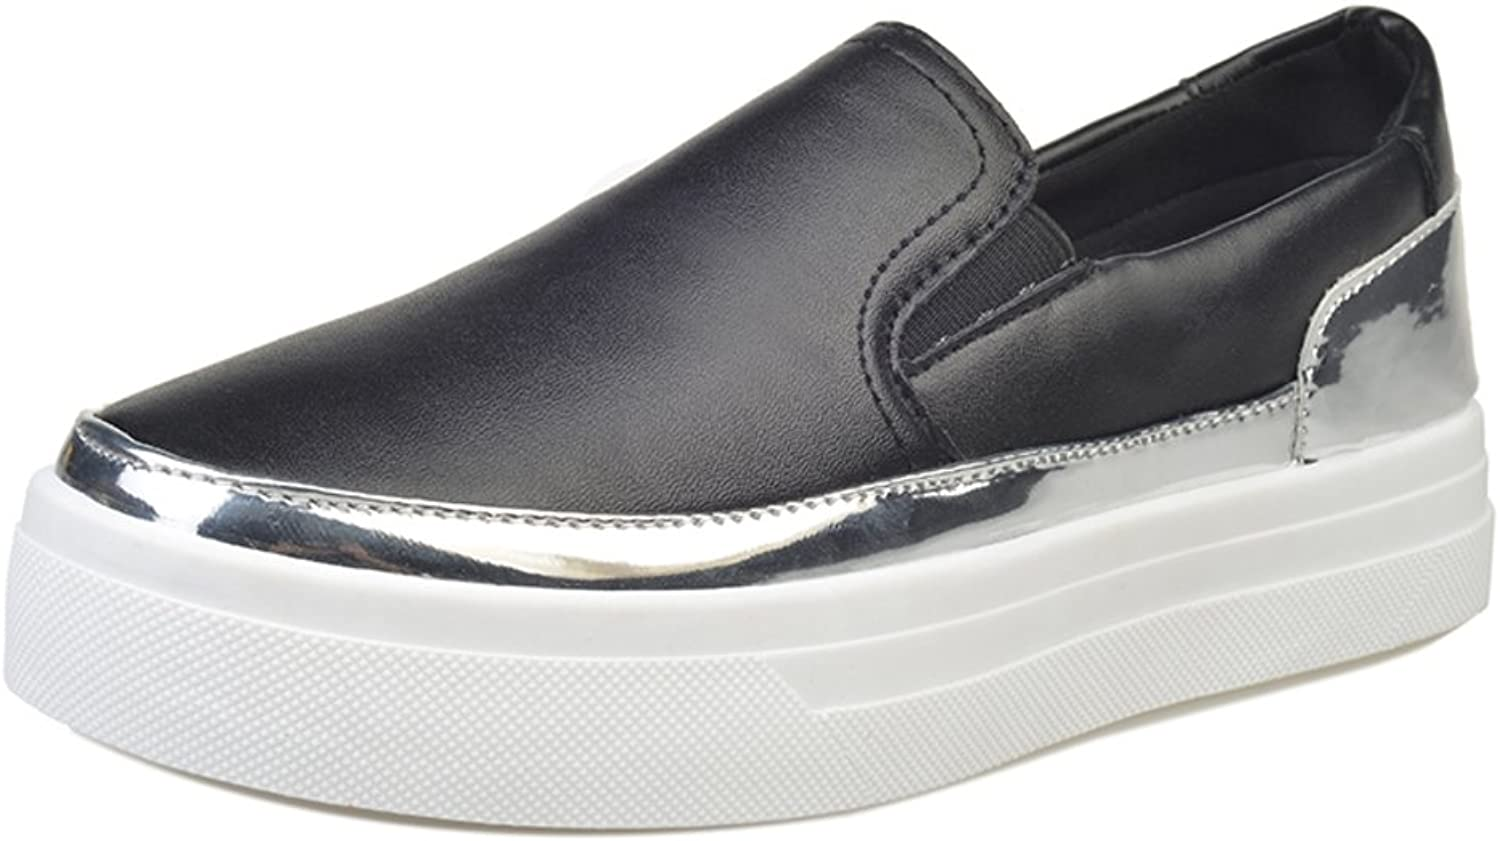 RHFDVGDS Fall low foot pedal tension Lok Fu shoes Leisure thin shoes Student board shoes